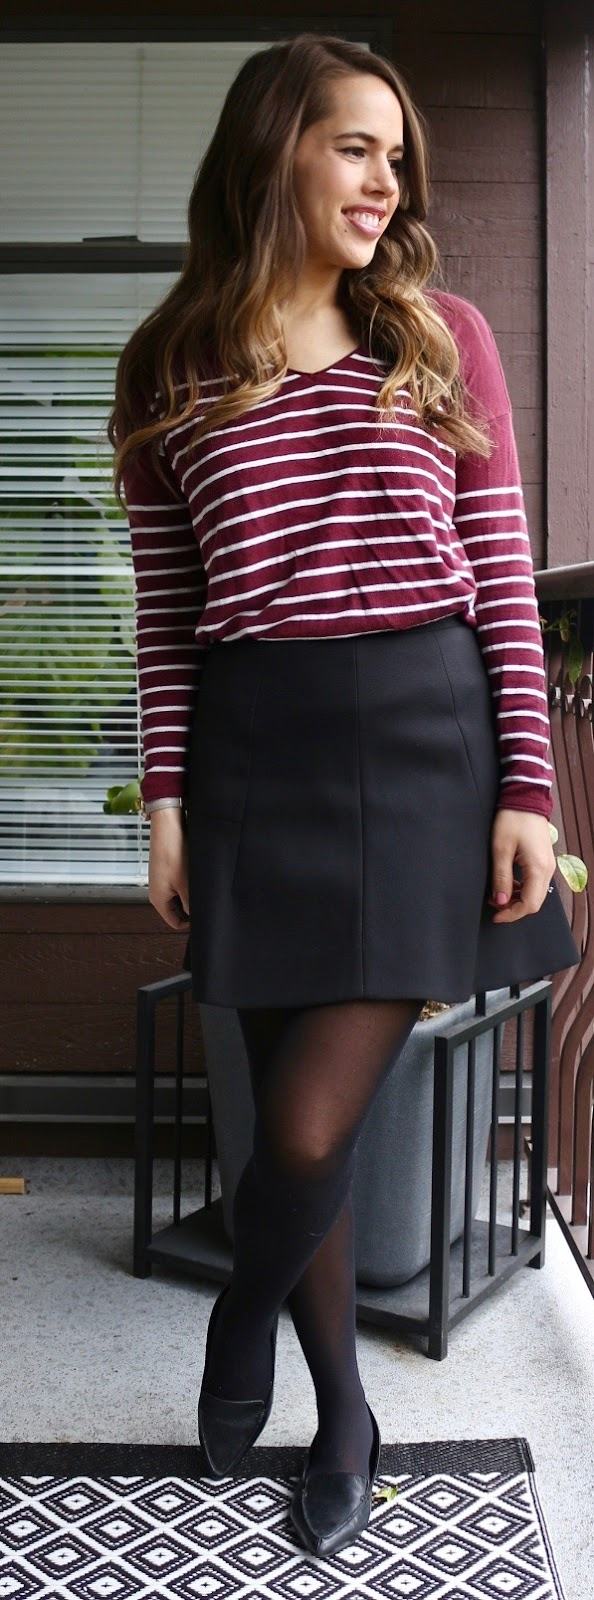 Jules in Flats - Burgundy Stripe Sweater and Black Skater Skirt